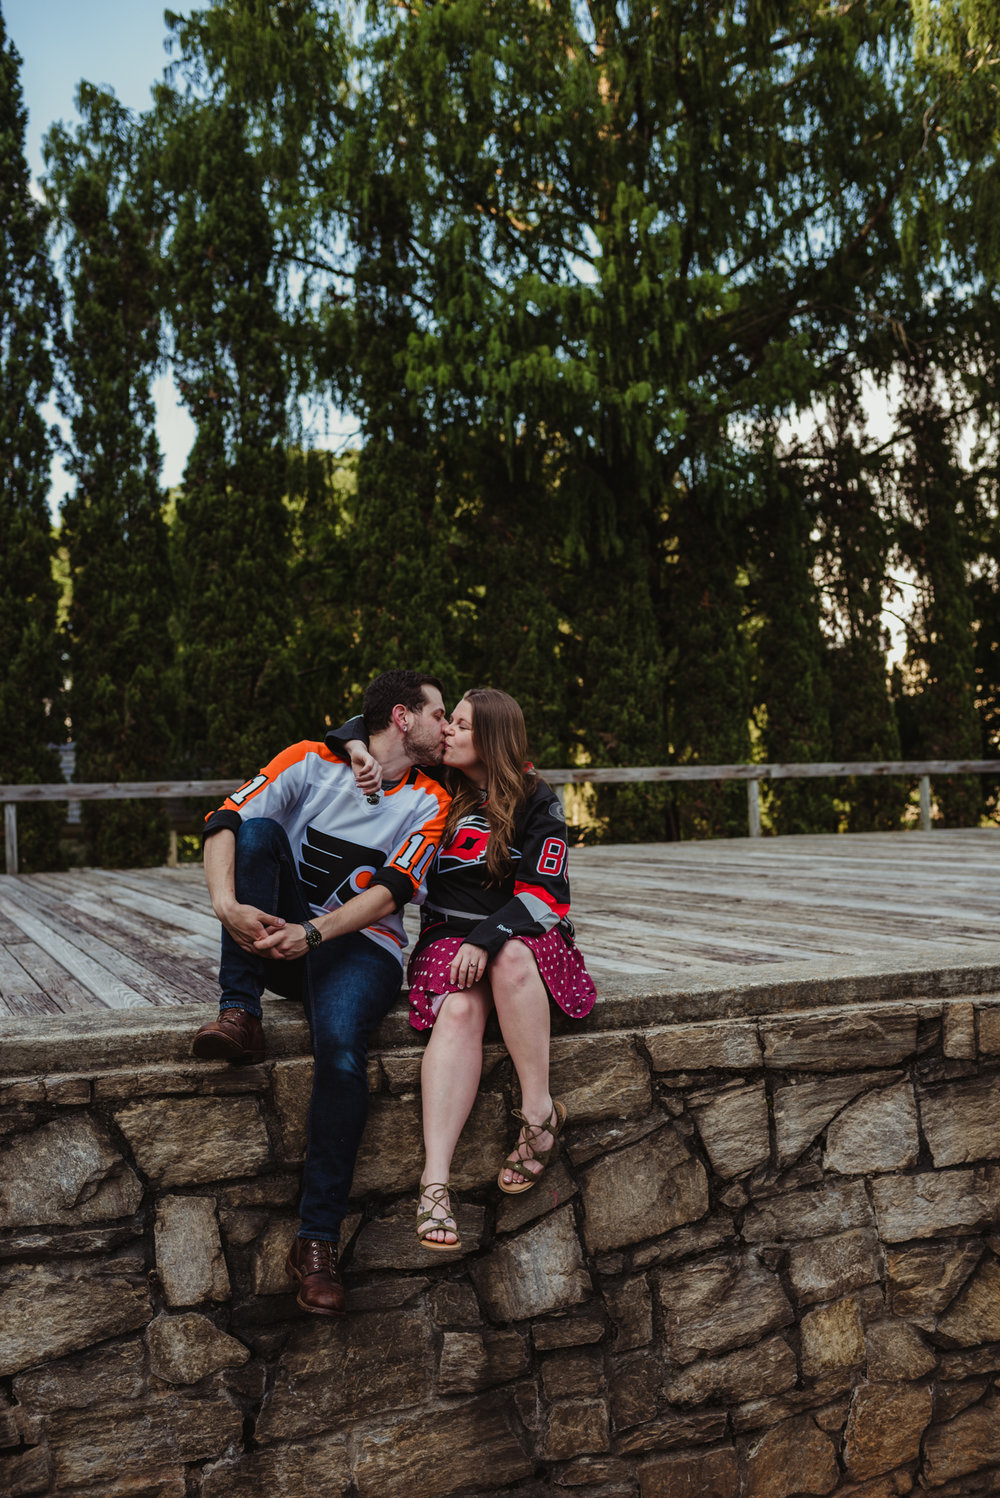 The bride and groom to be, in their Flyers and Hurricanes hockey jerseys, kiss on the Little Theater stage at the Raleigh Rose Garden during their engagement session with Rose Trail Images.